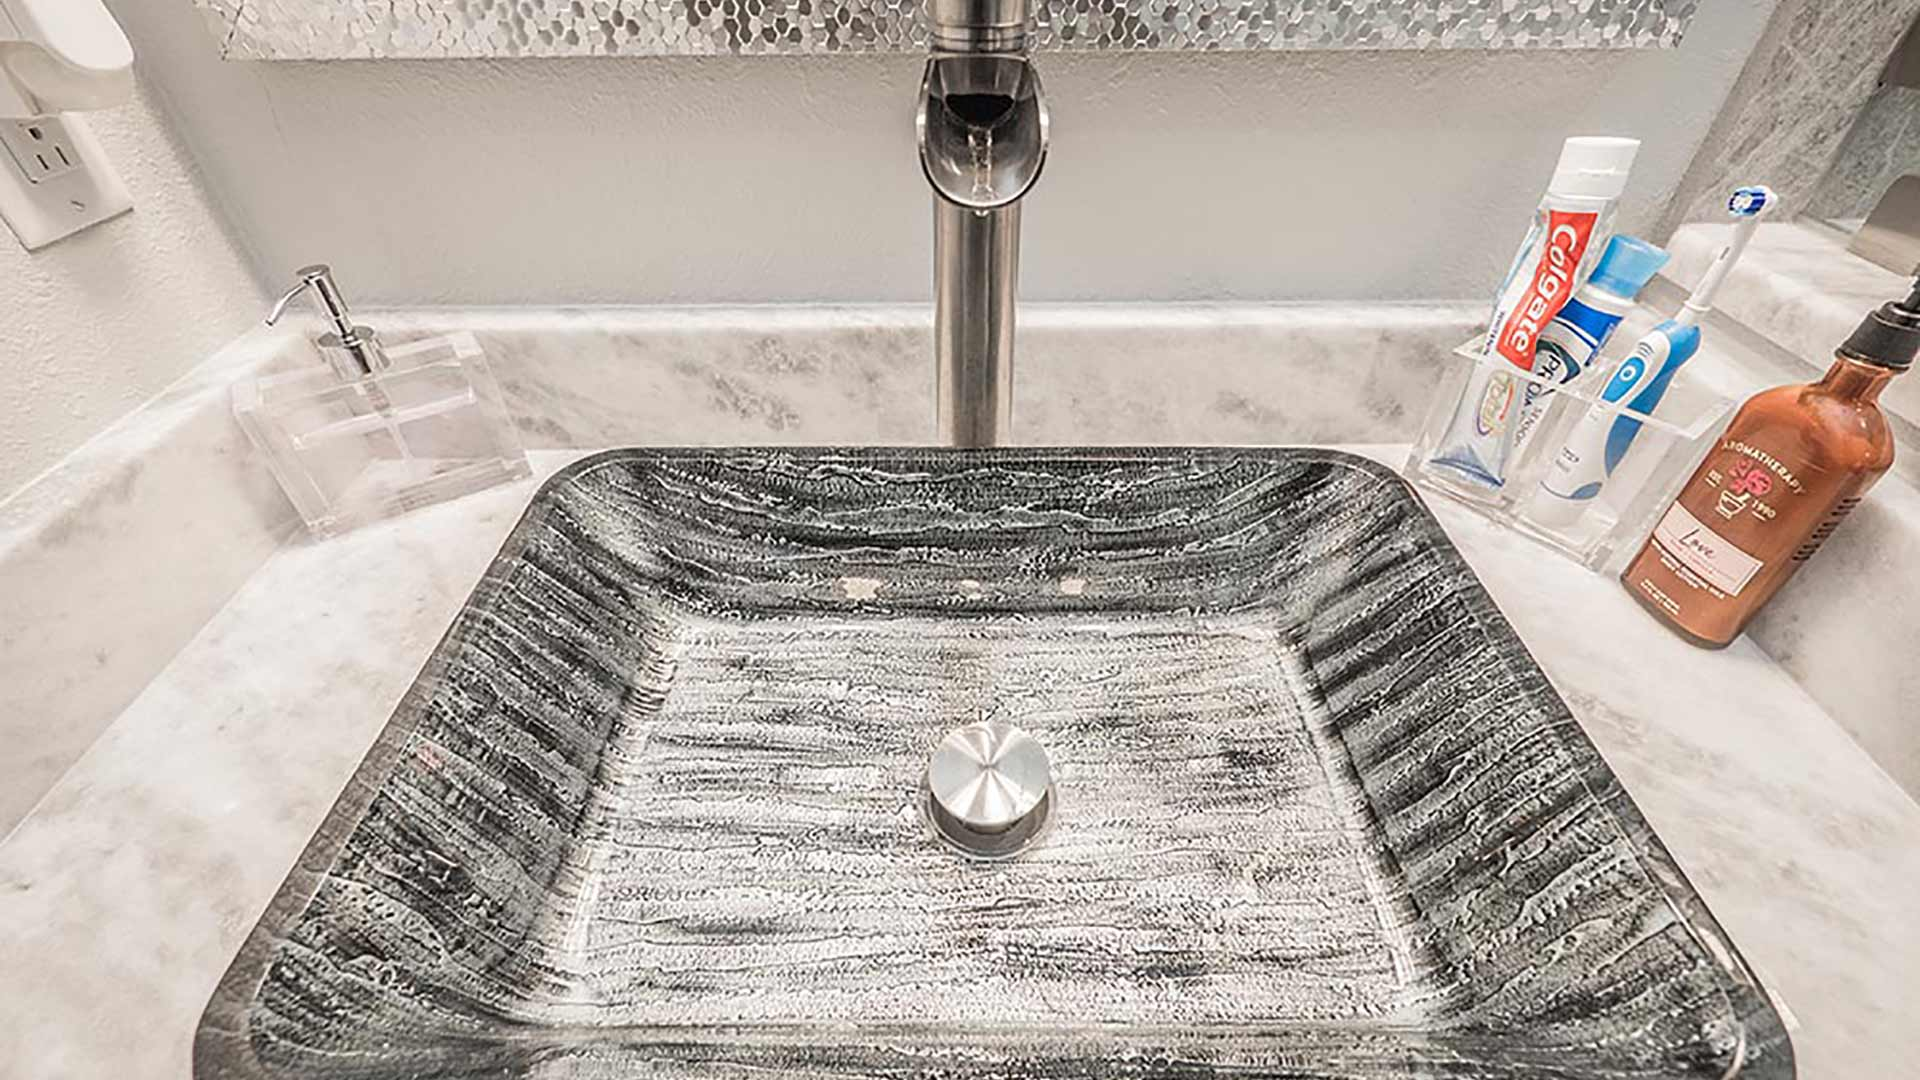 Choosing the Right Sink for Your Bathroom Remodel